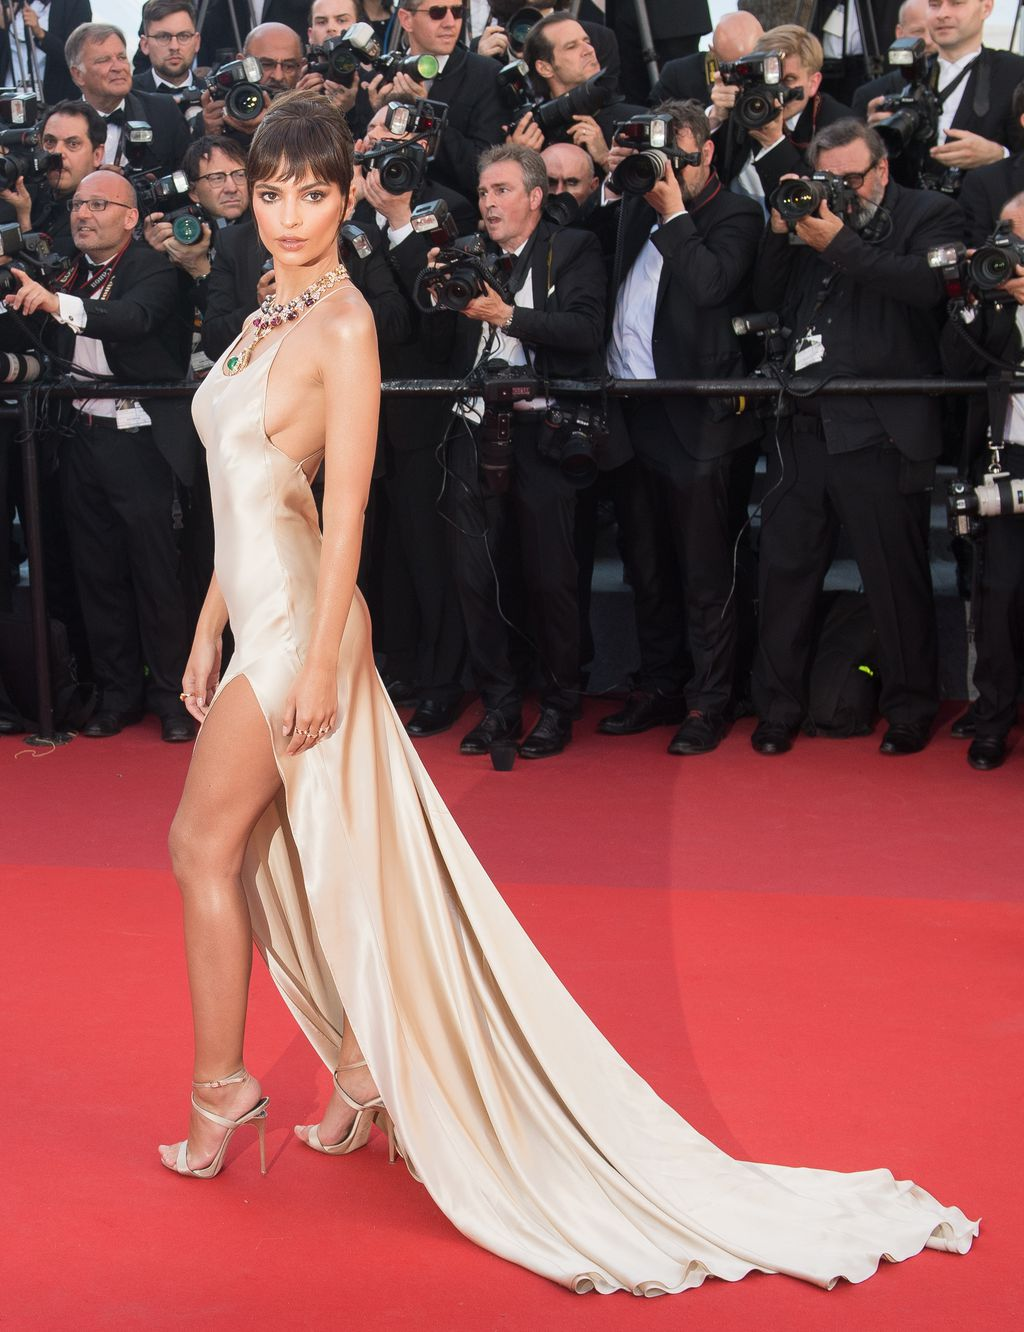 Model And Actress Emily Ratajkowski Certainly Knows How To Make An Entrance